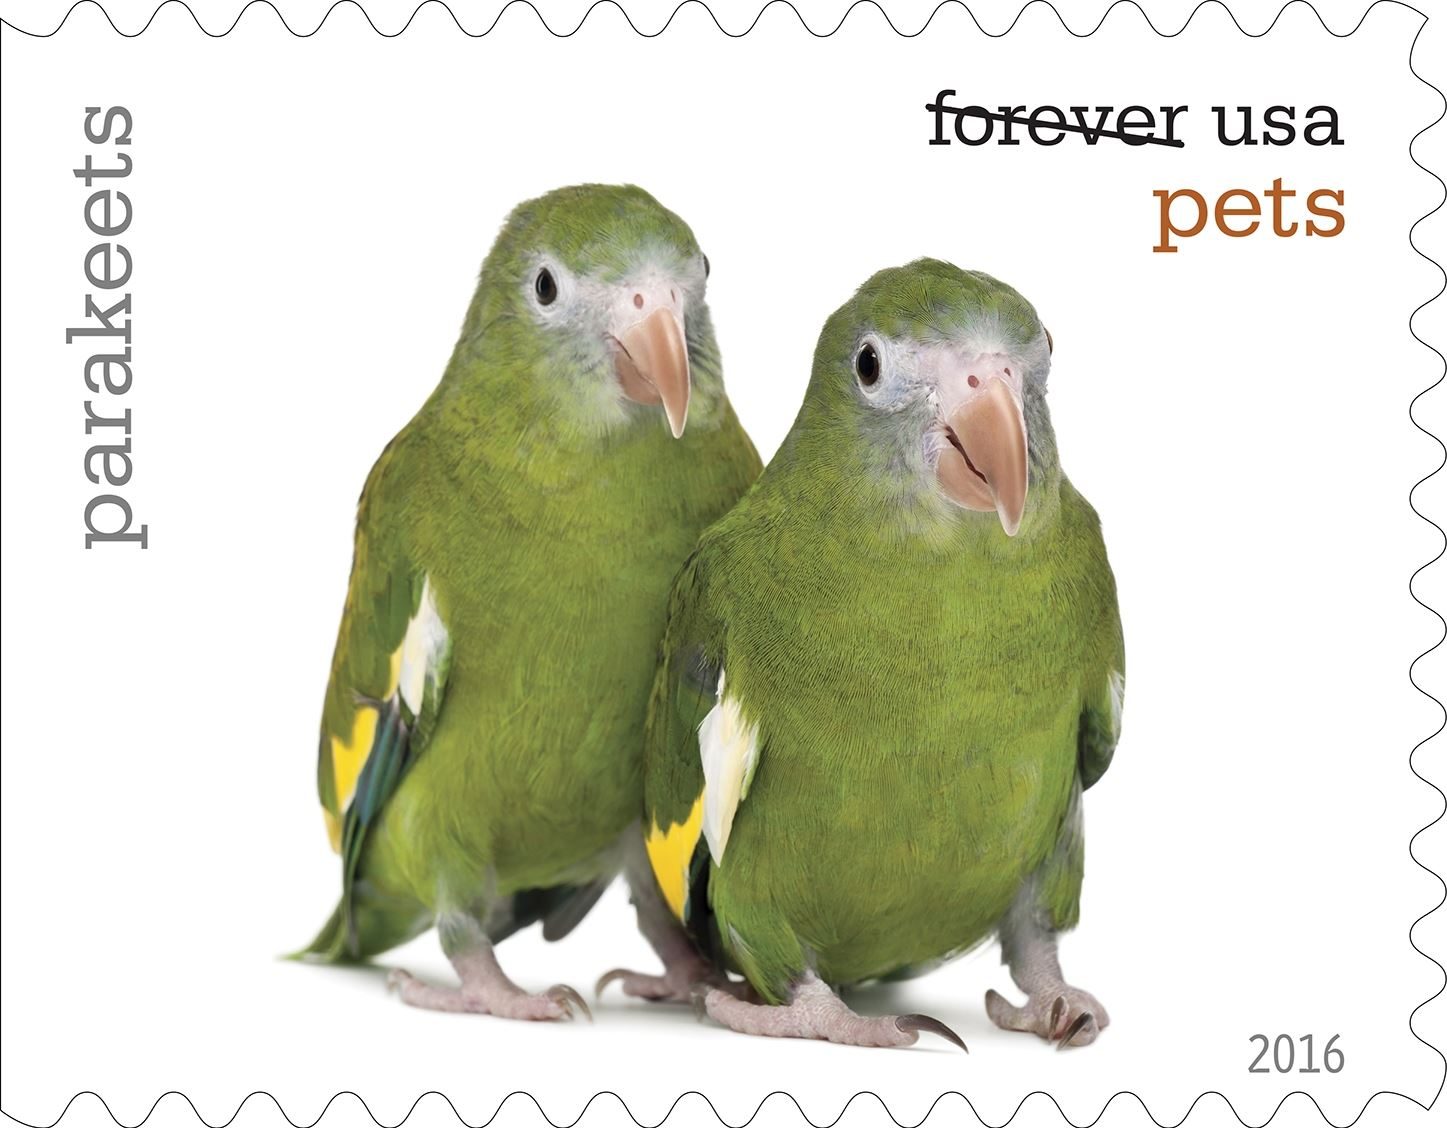 15-0_USPS16STA004p-5 Parakeets will be among the pets celebrated in an upcoming set of Forever stamps issued by the U.S. Postal Service.